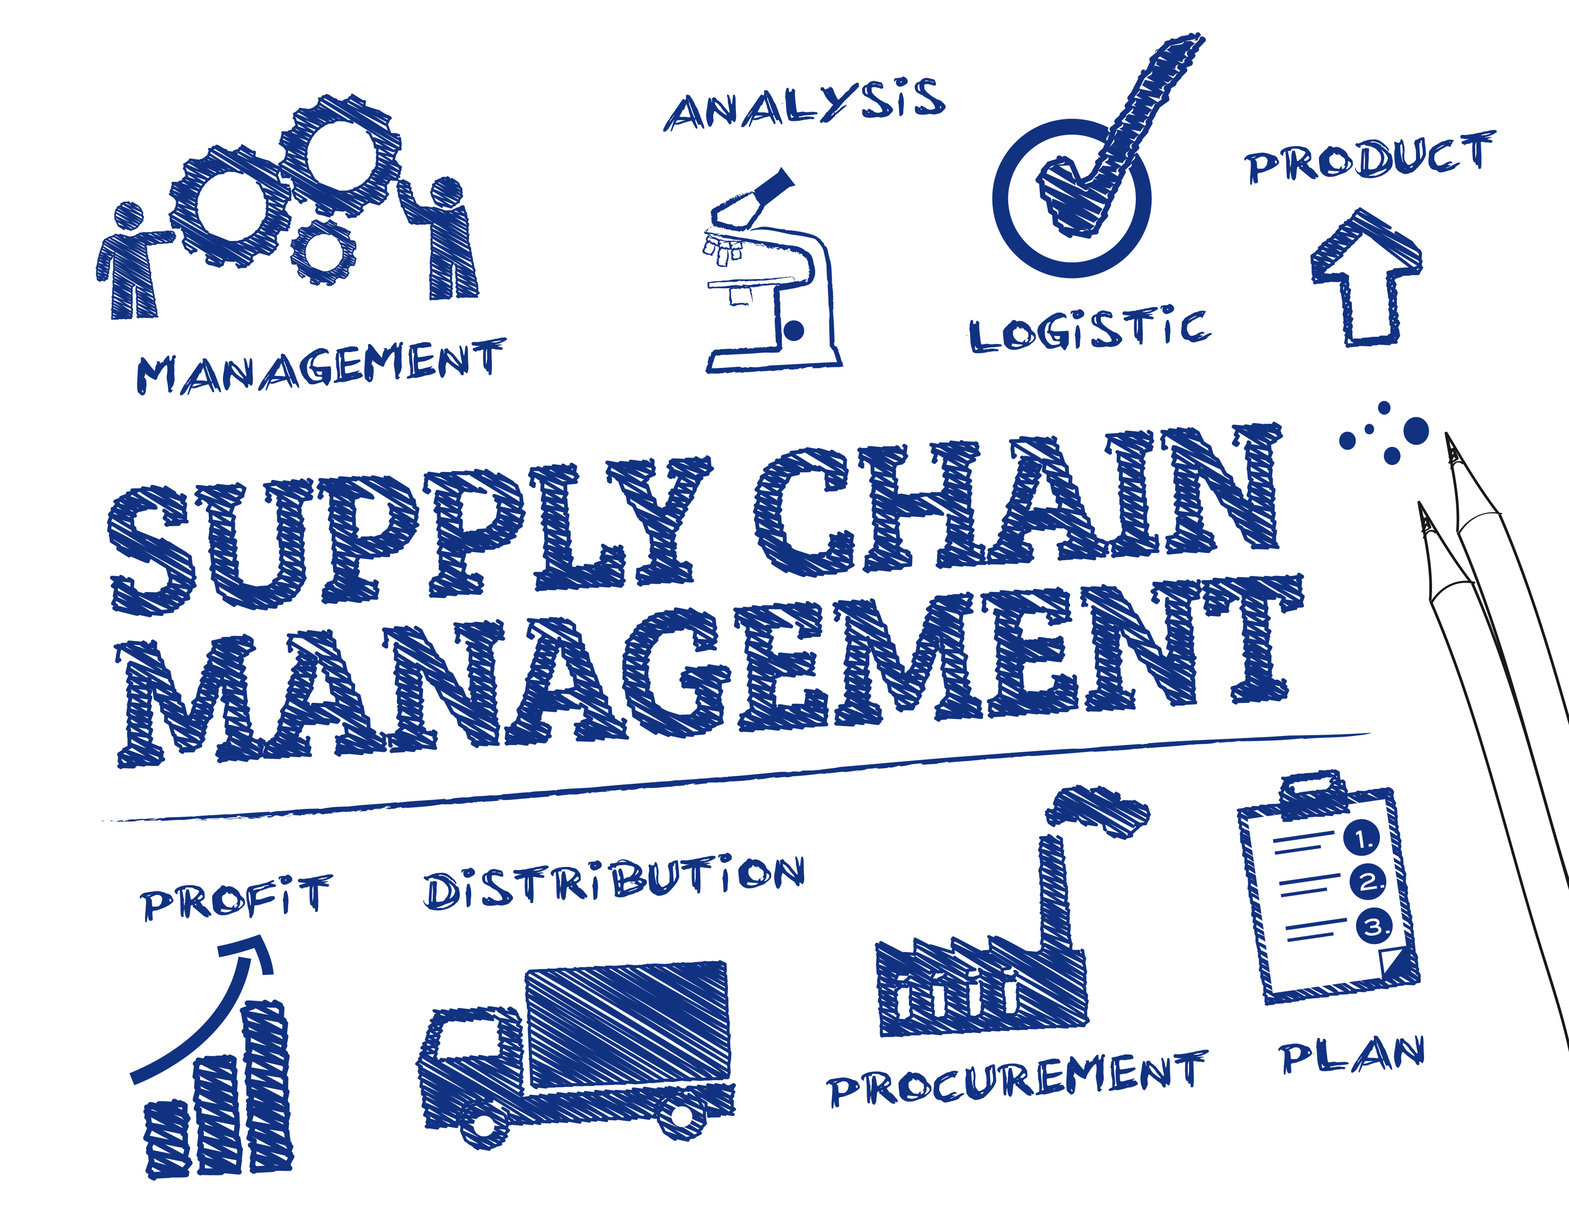 The importance of a supply chain management to the success of a business company